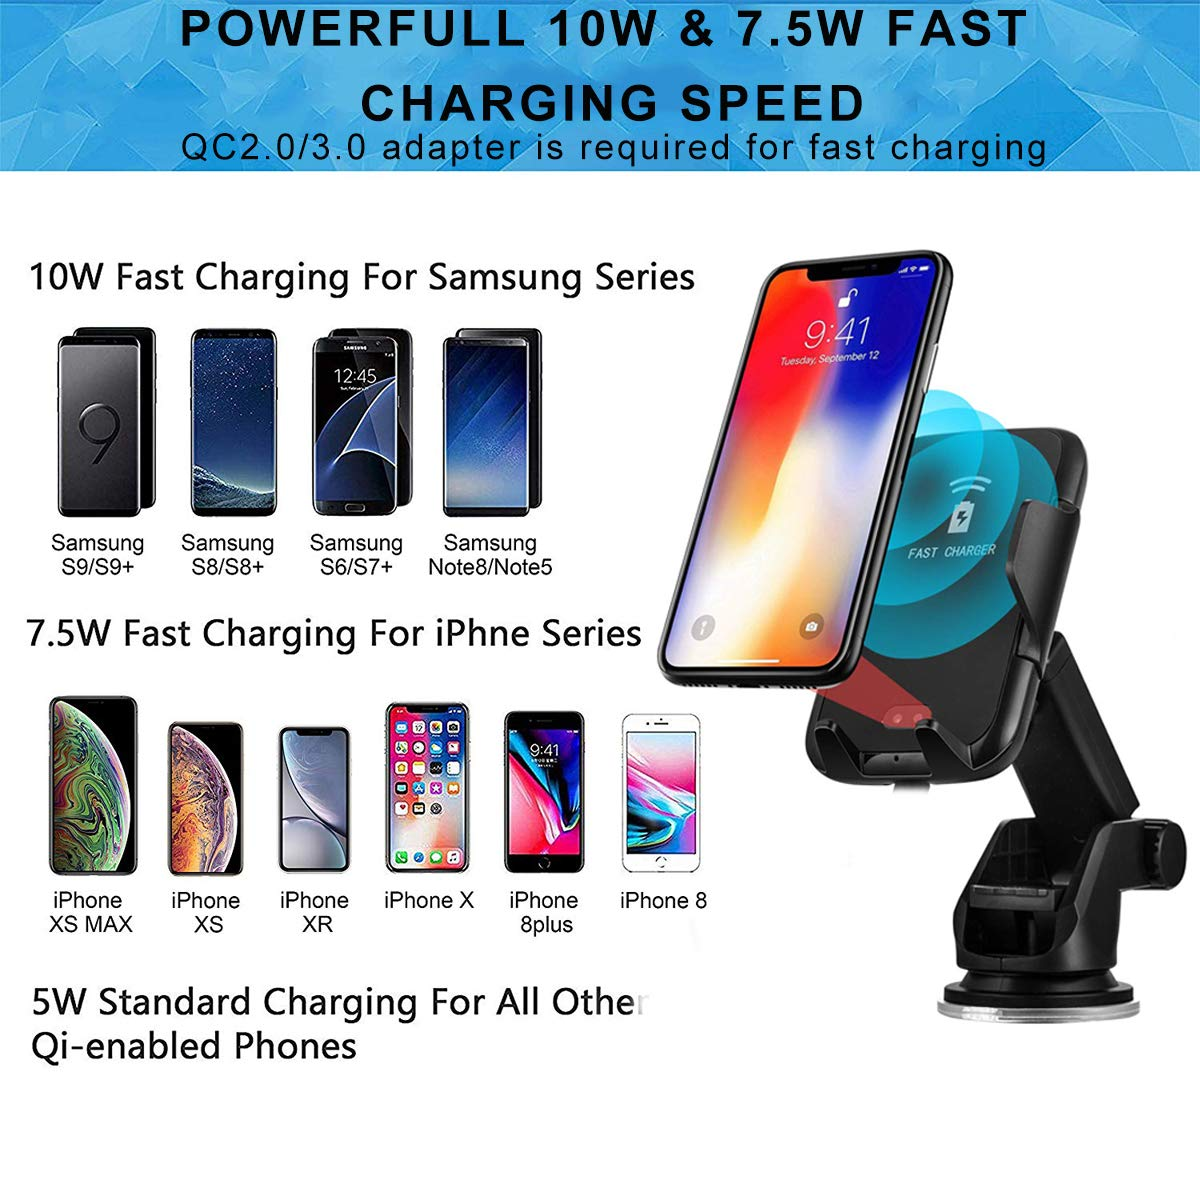 MASHANG Universal Car Dashboard Mount Holder Cradle for iPhone Xs XS Max X 8 8 Plus 7 7 Plus SE 6S 6 Plus Samsung Galaxy S6 S5 S4 LG Nokia Huawei and More Phone Holder for Car